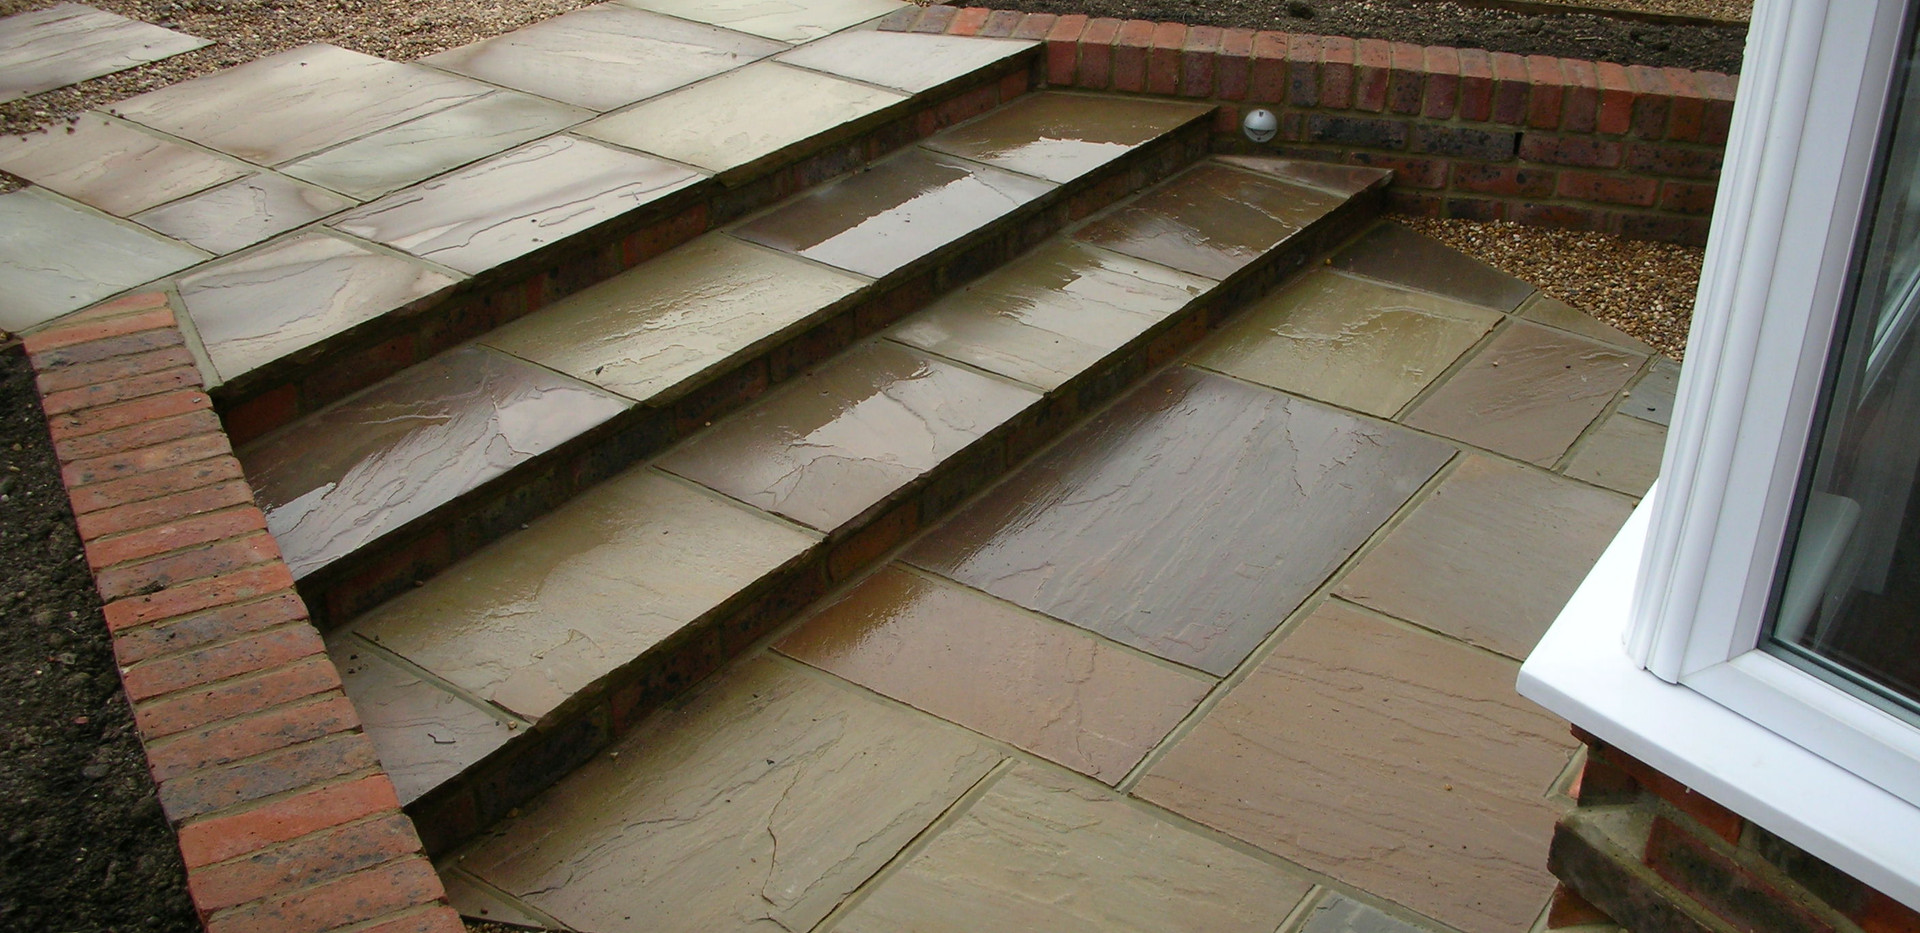 Raj Sandstone Paving, Freshfield Lane 1st Facing Bricks